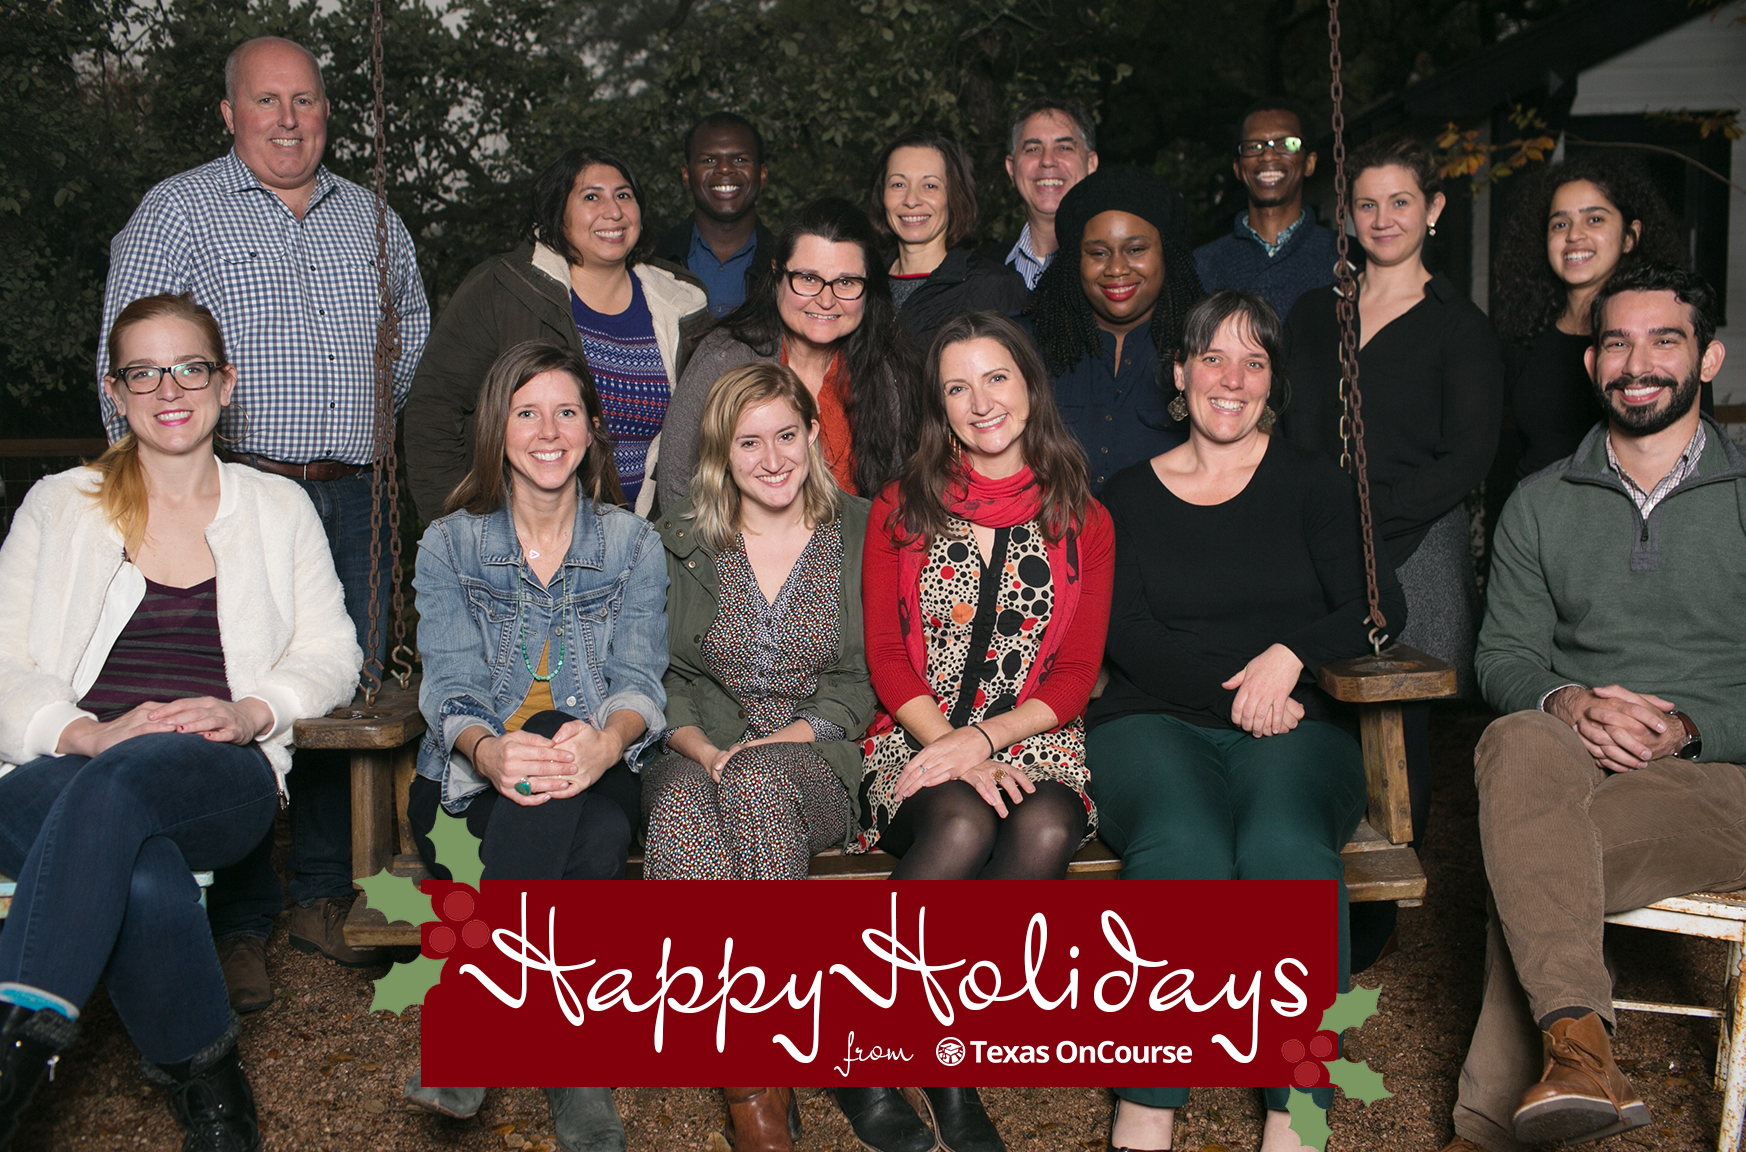 Happy holidays from texas oncourse